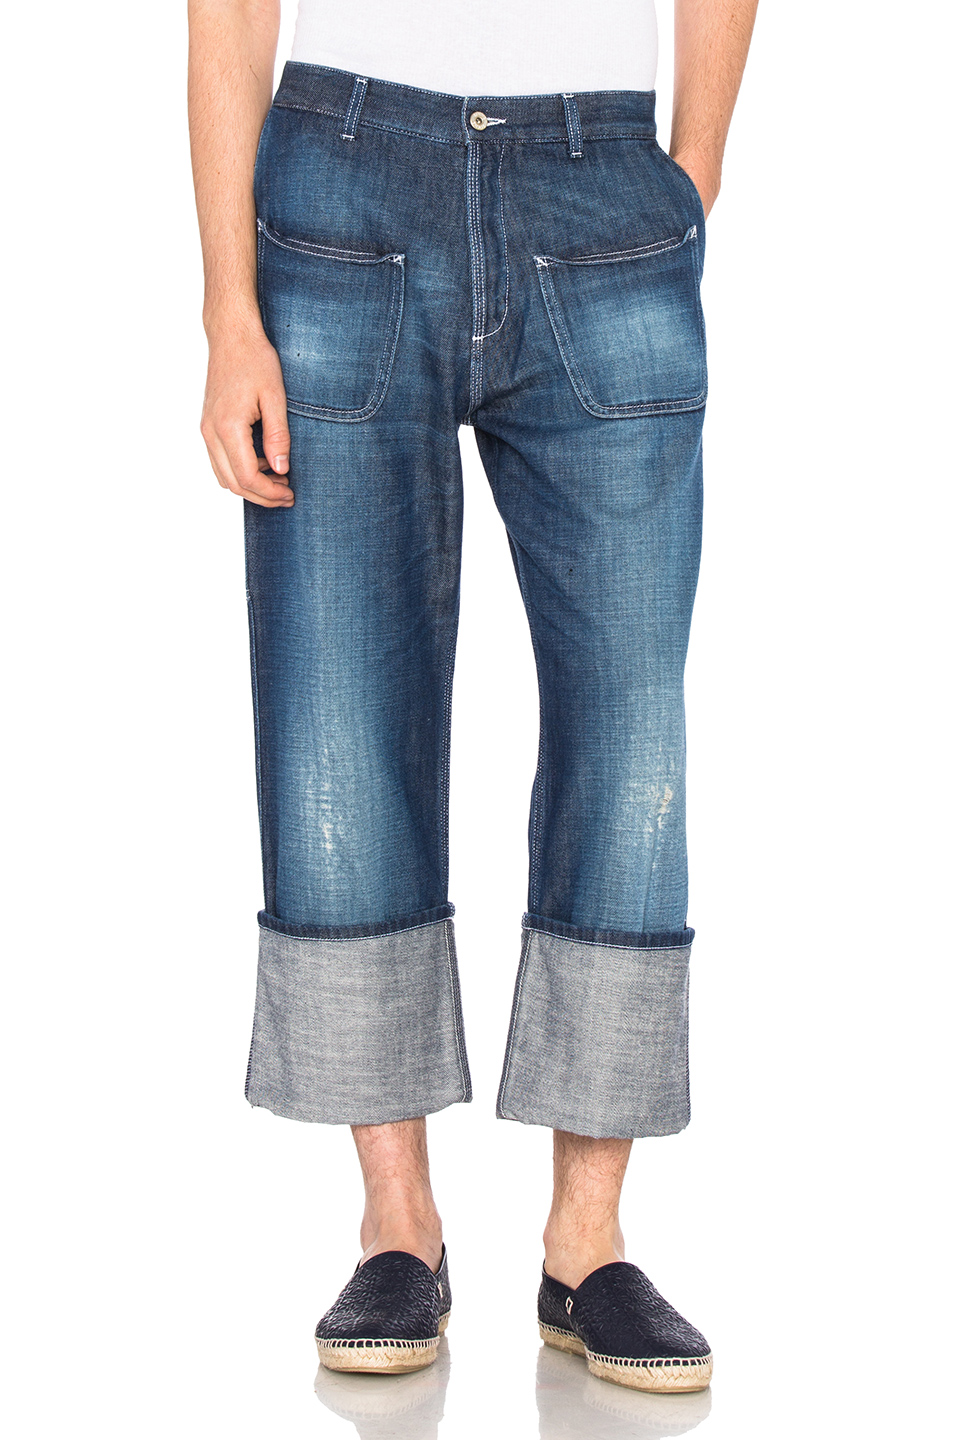 Loewe Patch Pocket Jeans in Blue